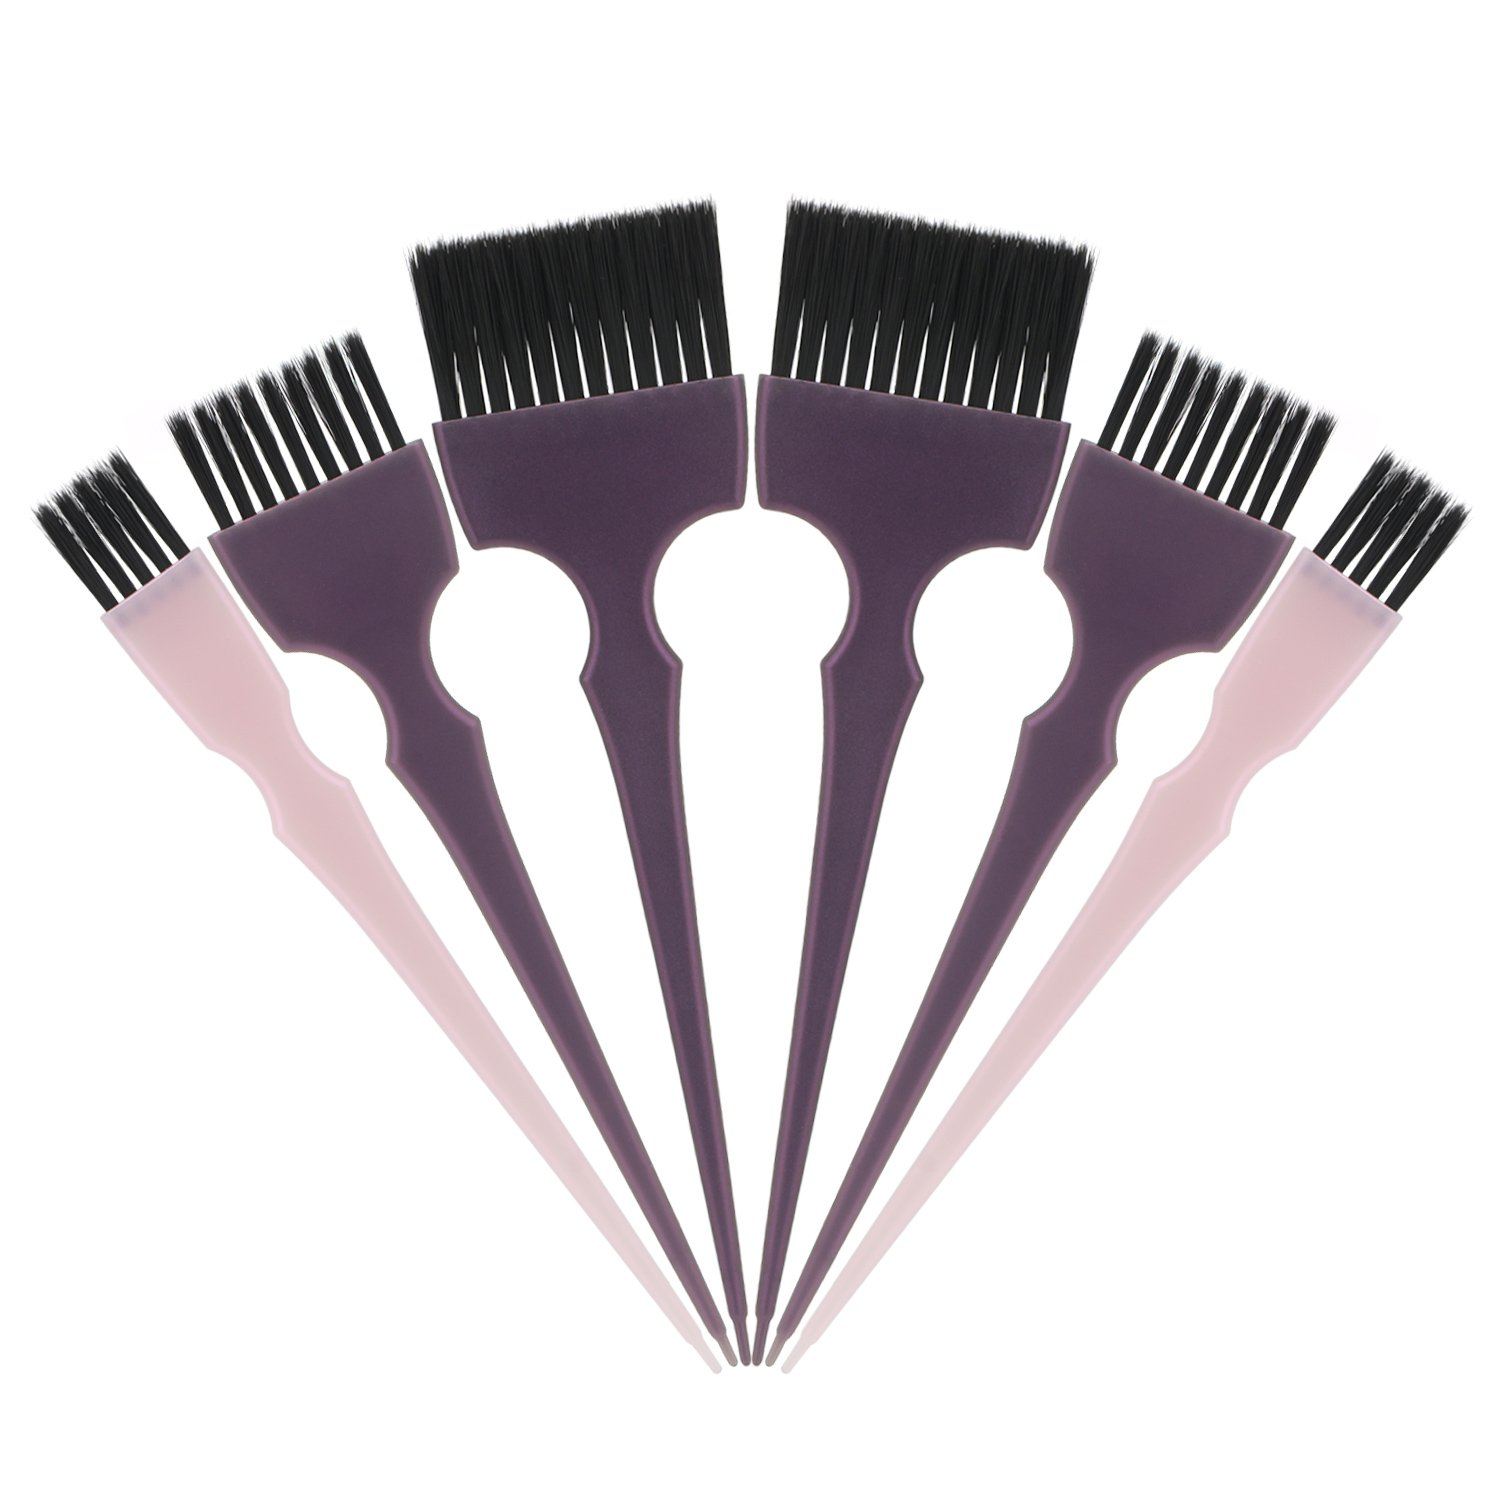 Segbeauty Hair Dye Brush, 6pcs Tint Brush Set Hair Coloring Brushes, Professional Hairdressing Tinting Brush Color Applicator Brush, Hair Bleach Styling Brush for Hair Dyeing Balayage by Segbeauty